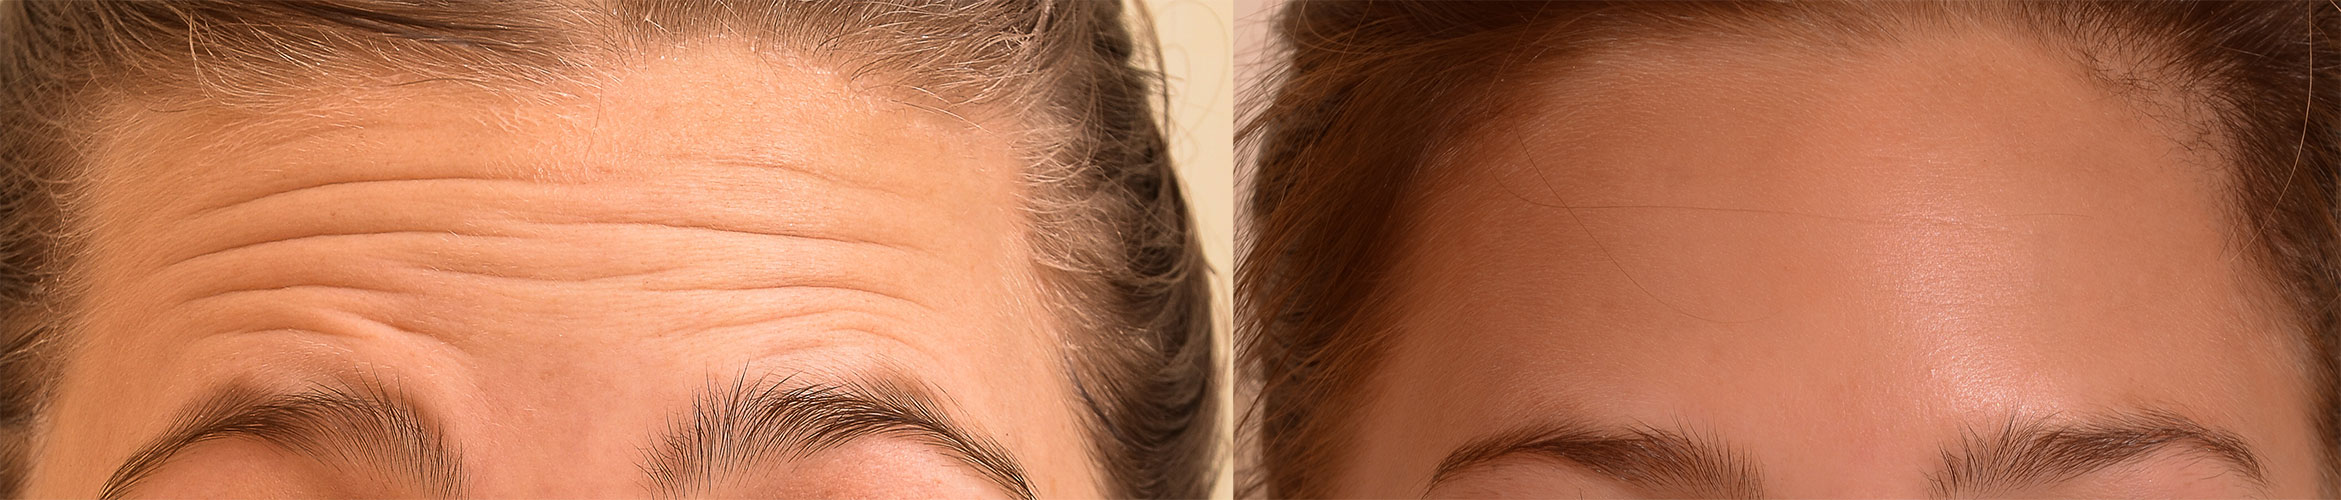 Botox-forehead-before-and-after.jpg